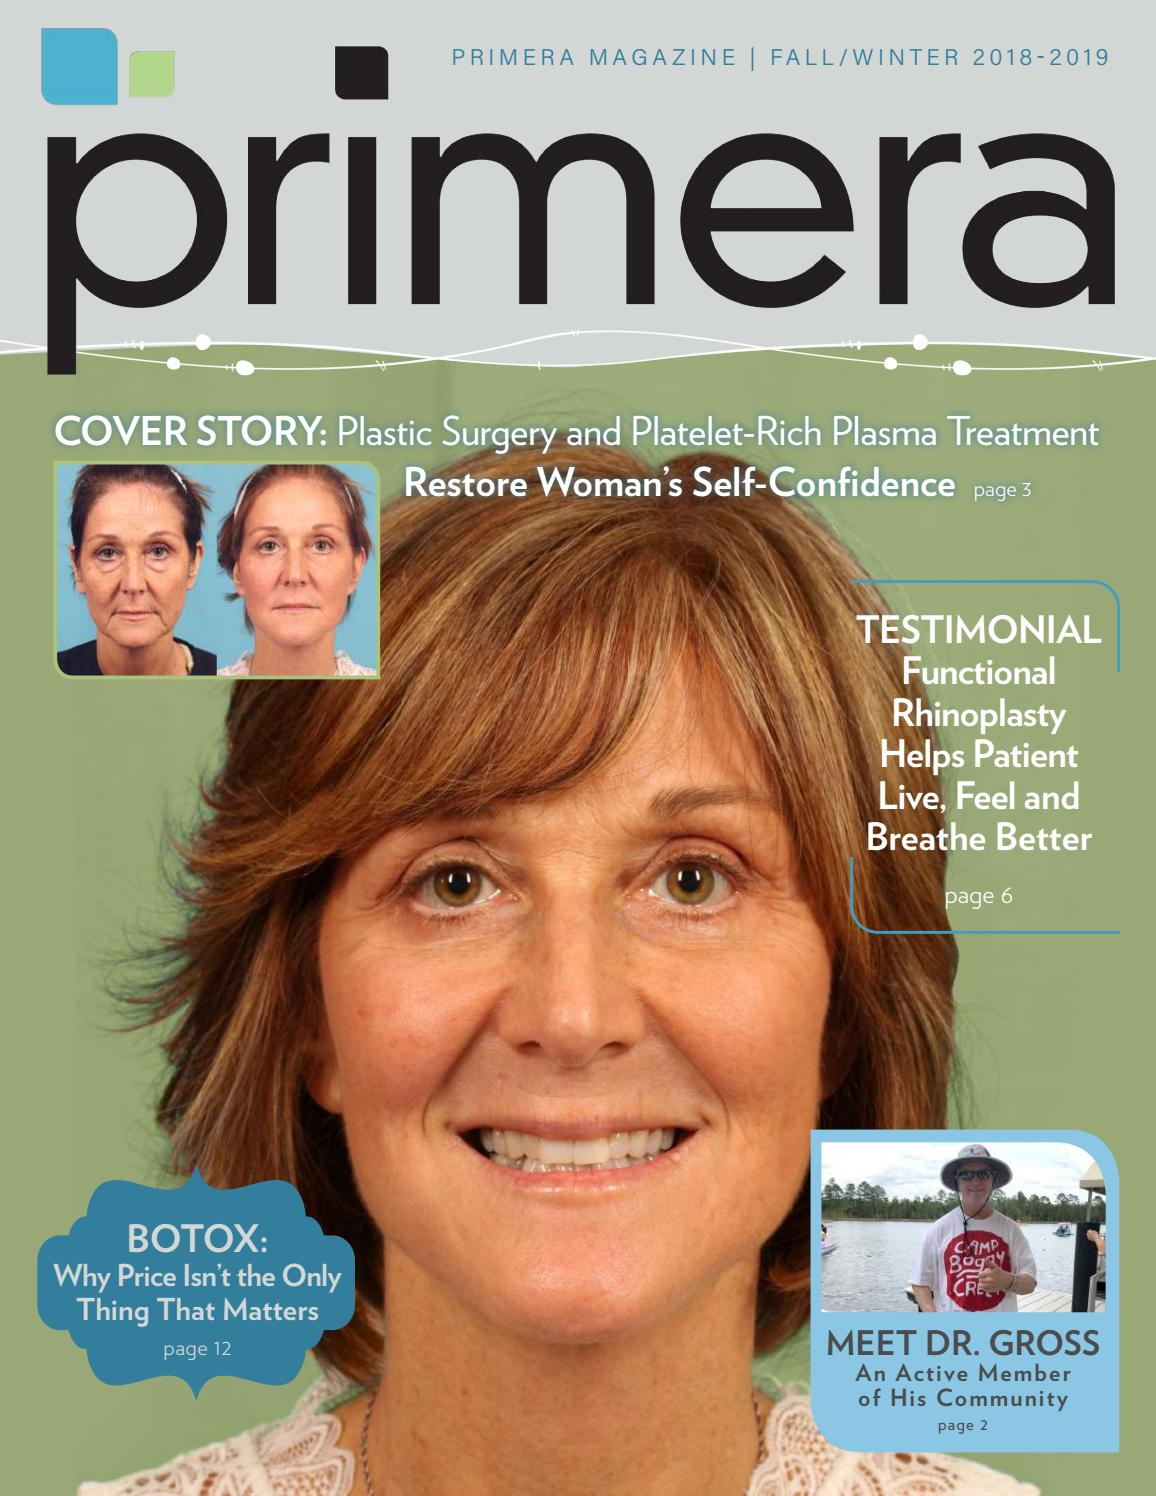 Primera Orlando Newsletter Fall/Winter 2018-19 by primeraorlando - issuu